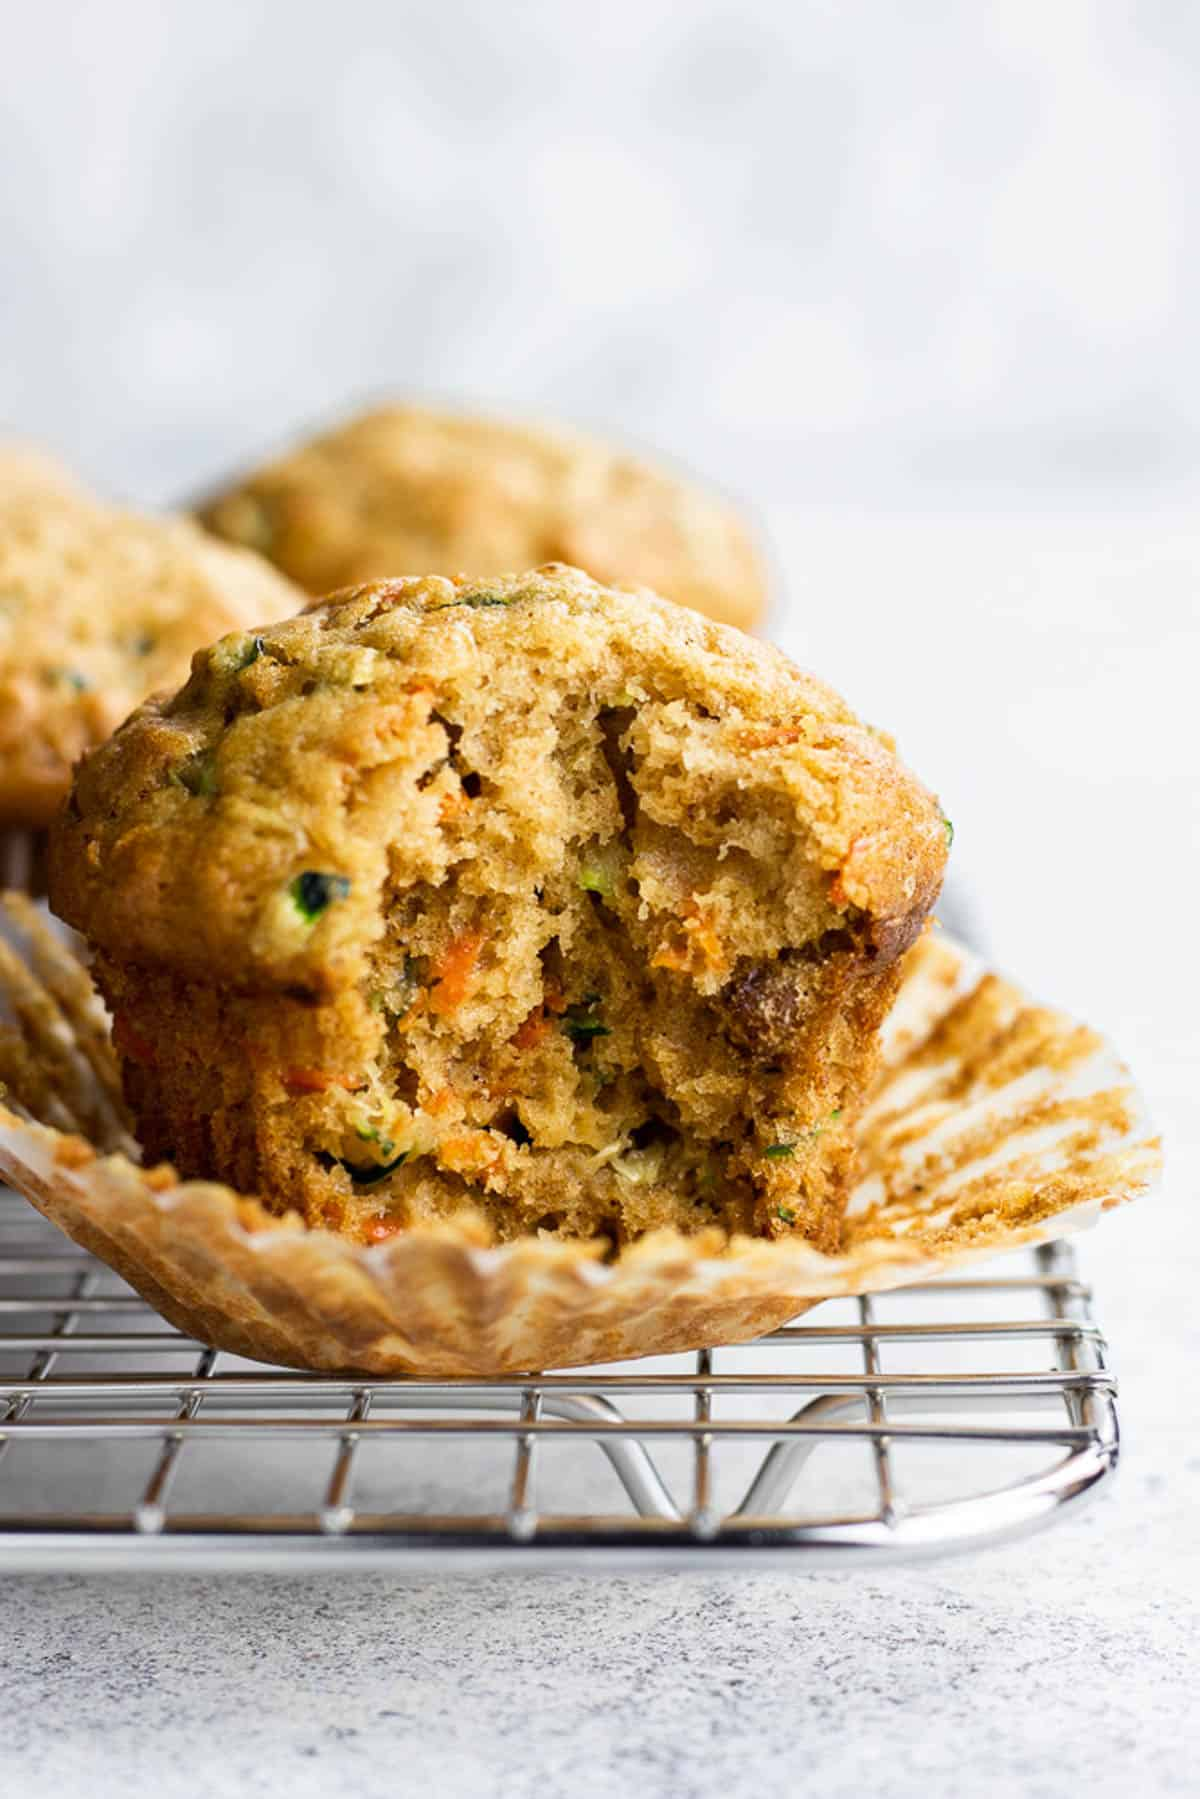 Freshly baked Carrot Zucchini Muffins on a wire rack.